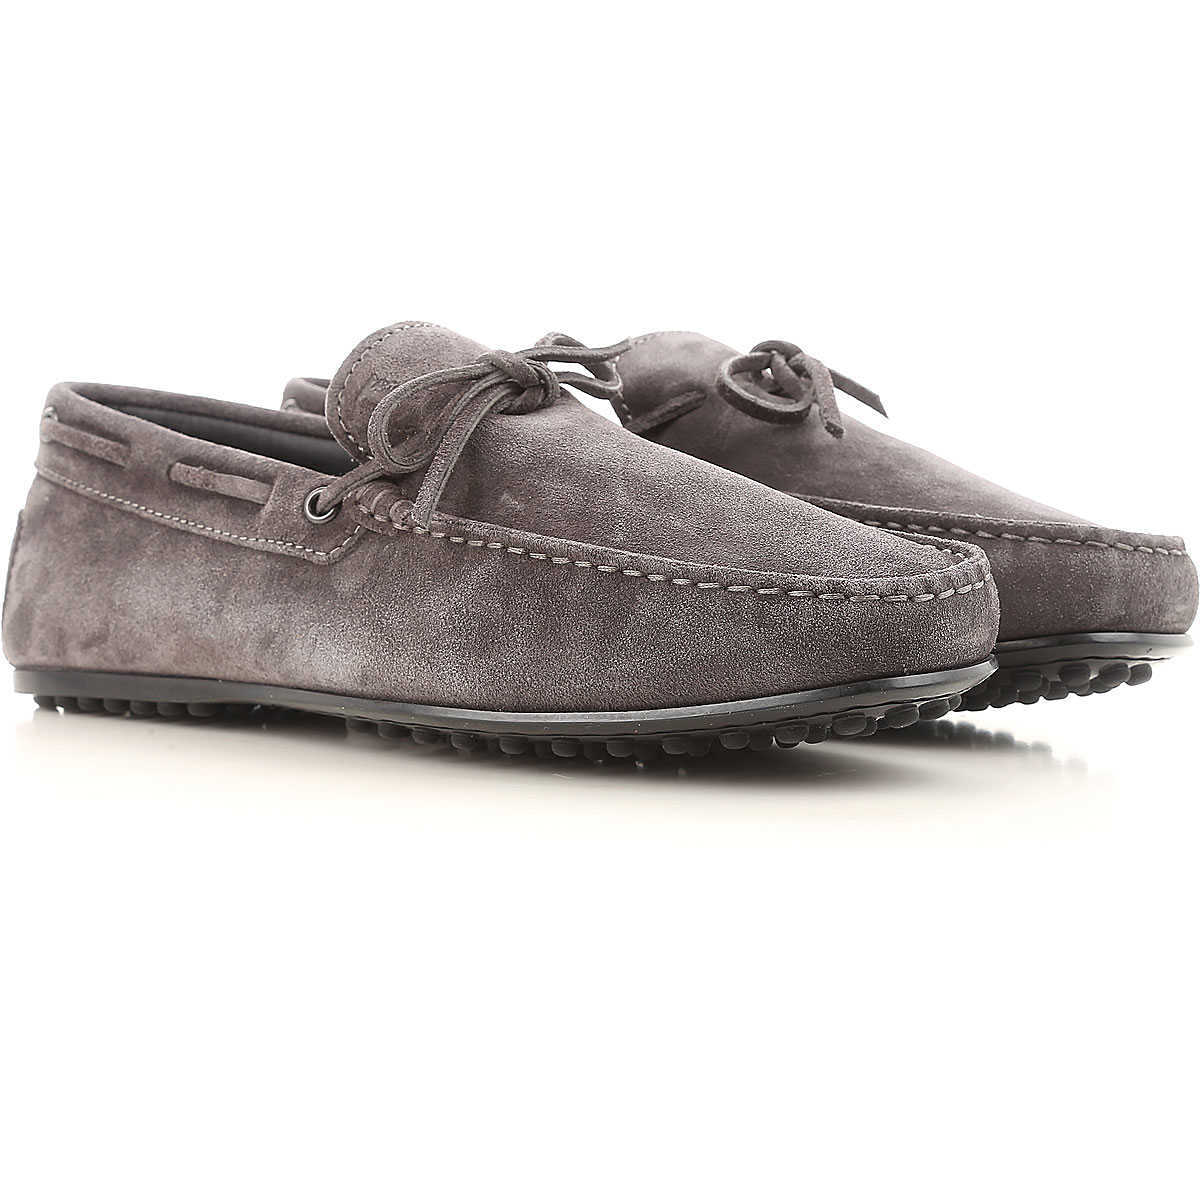 Tods Loafers for Men On Sale Ash Grey UK - GOOFASH